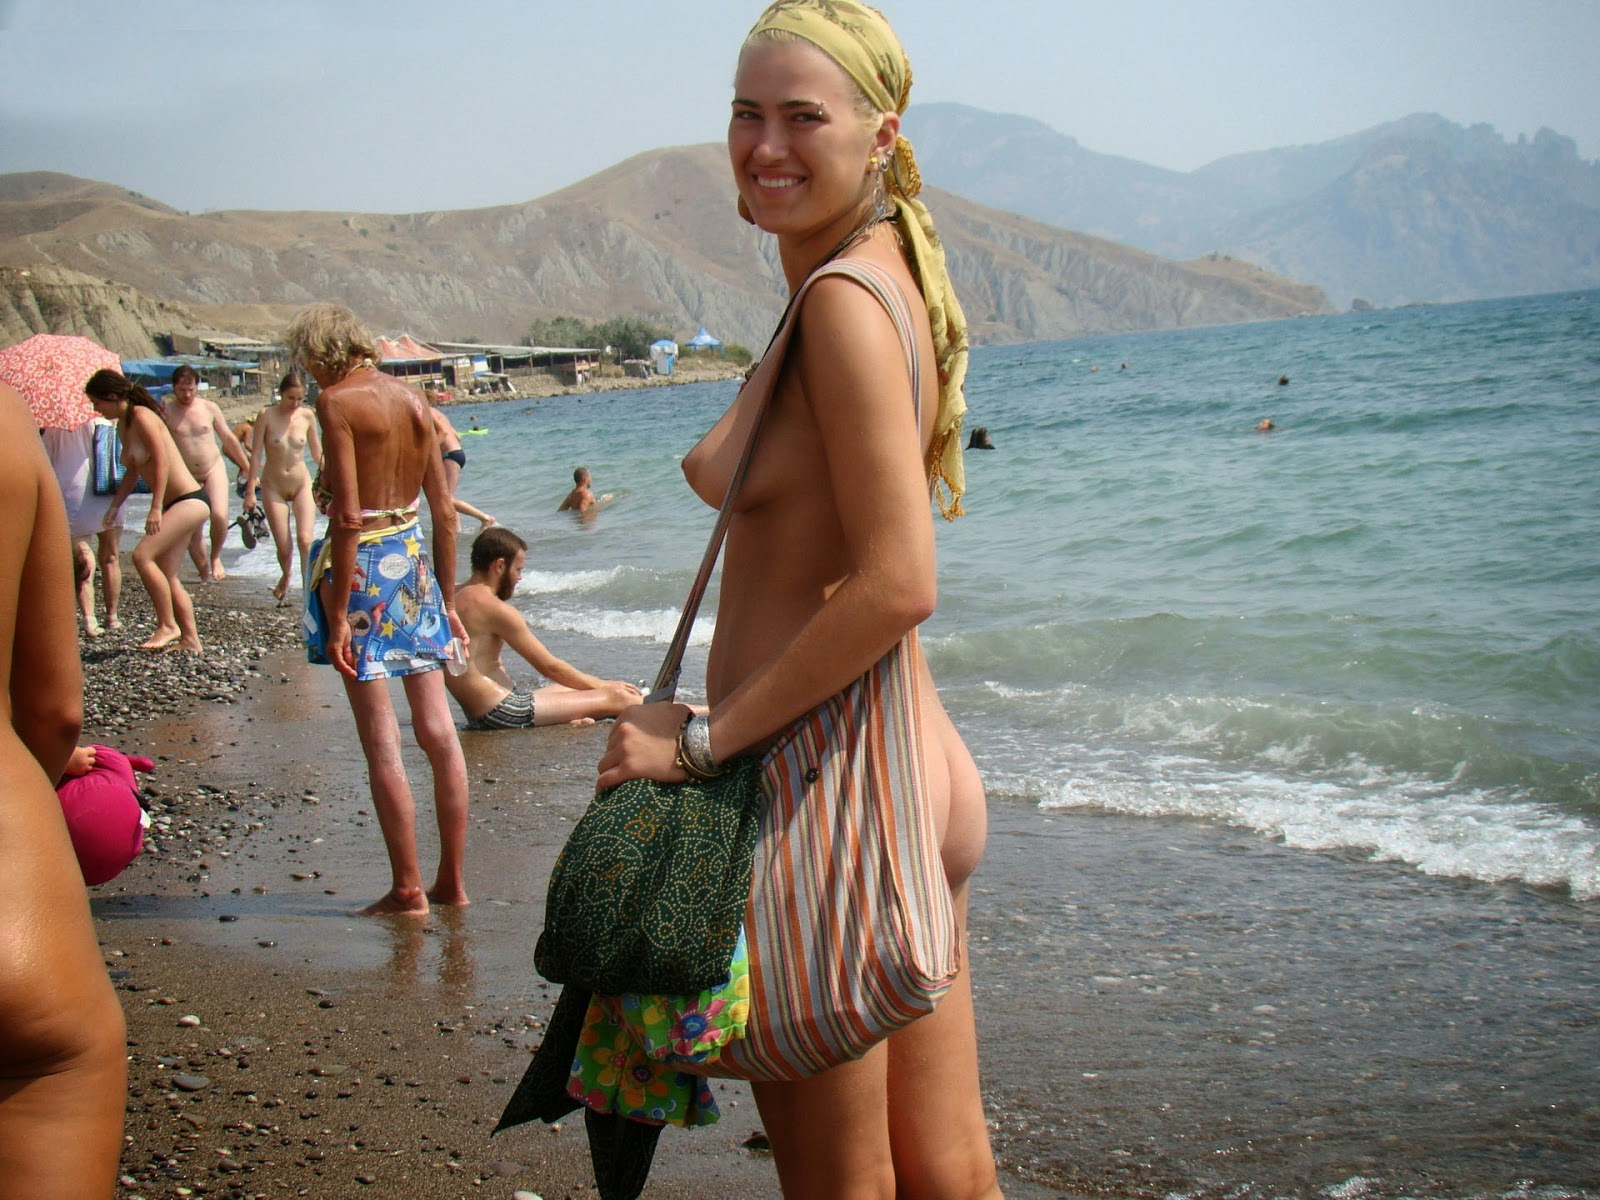 Kiev nude beach review